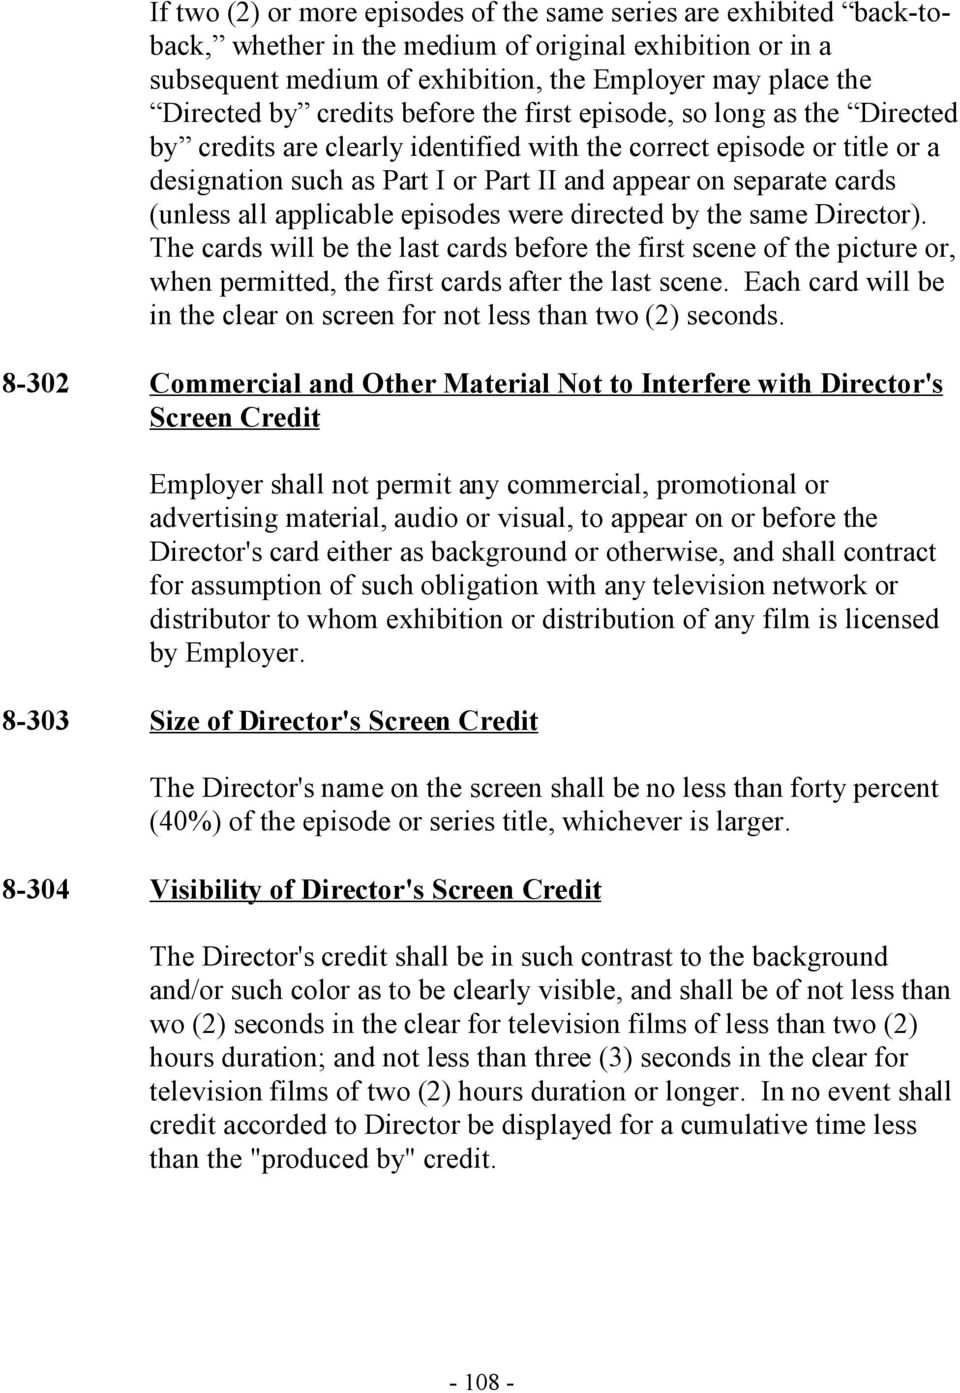 (unless all applicable episodes were directed by the same Director). The cards will be the last cards before the first scene of the picture or, when permitted, the first cards after the last scene.